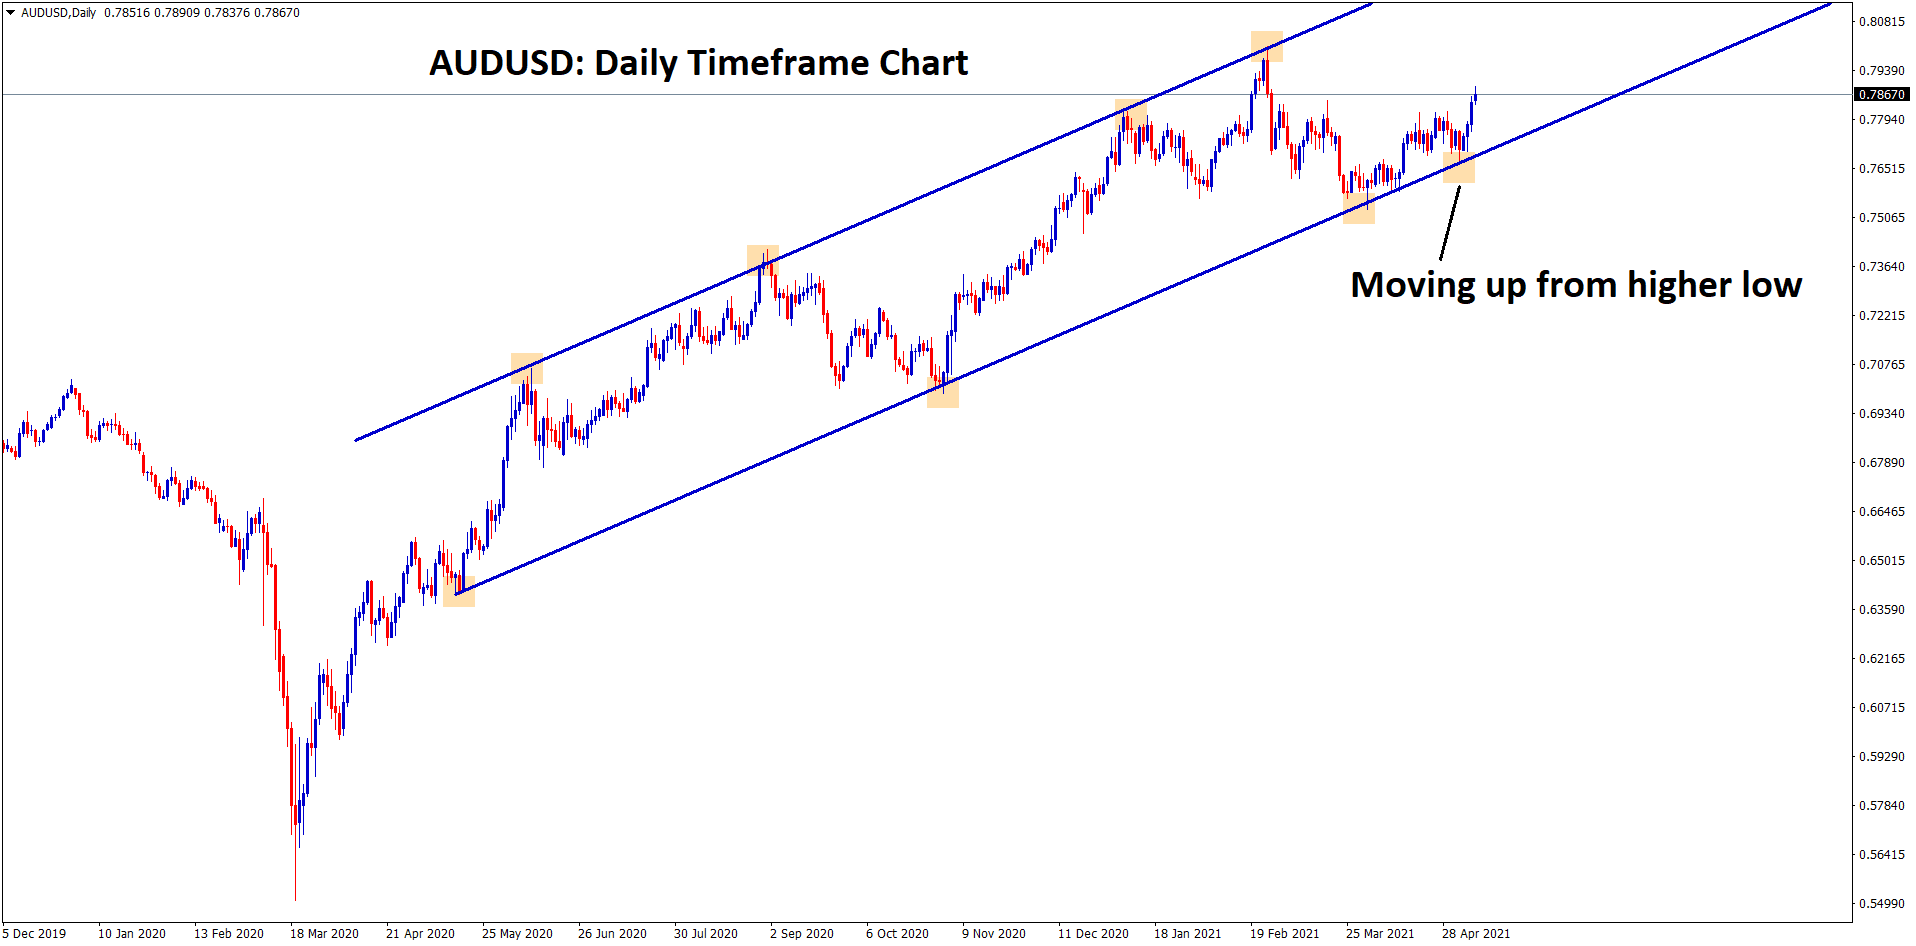 AUDUSD moving in uptrend from higher low